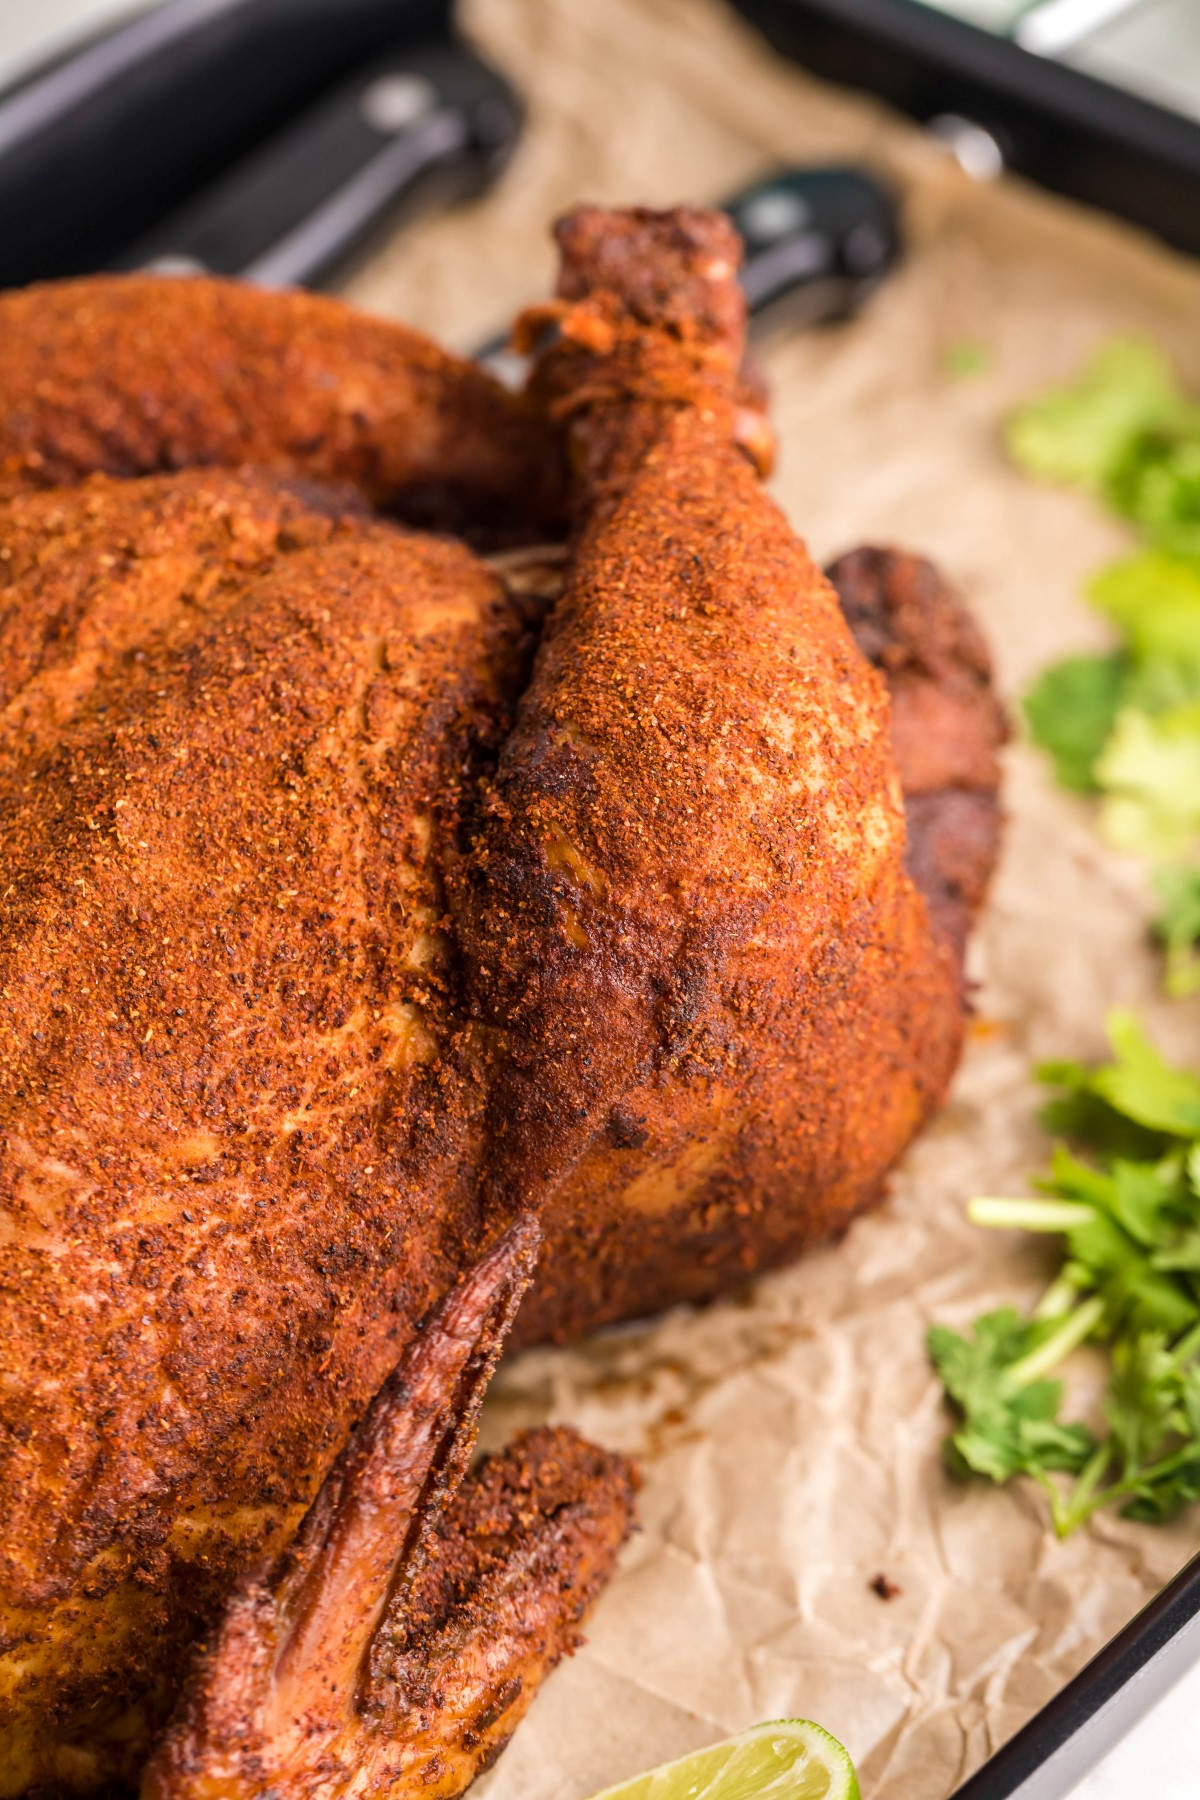 Whole smoked chicken on brown paper covered in dry rub.